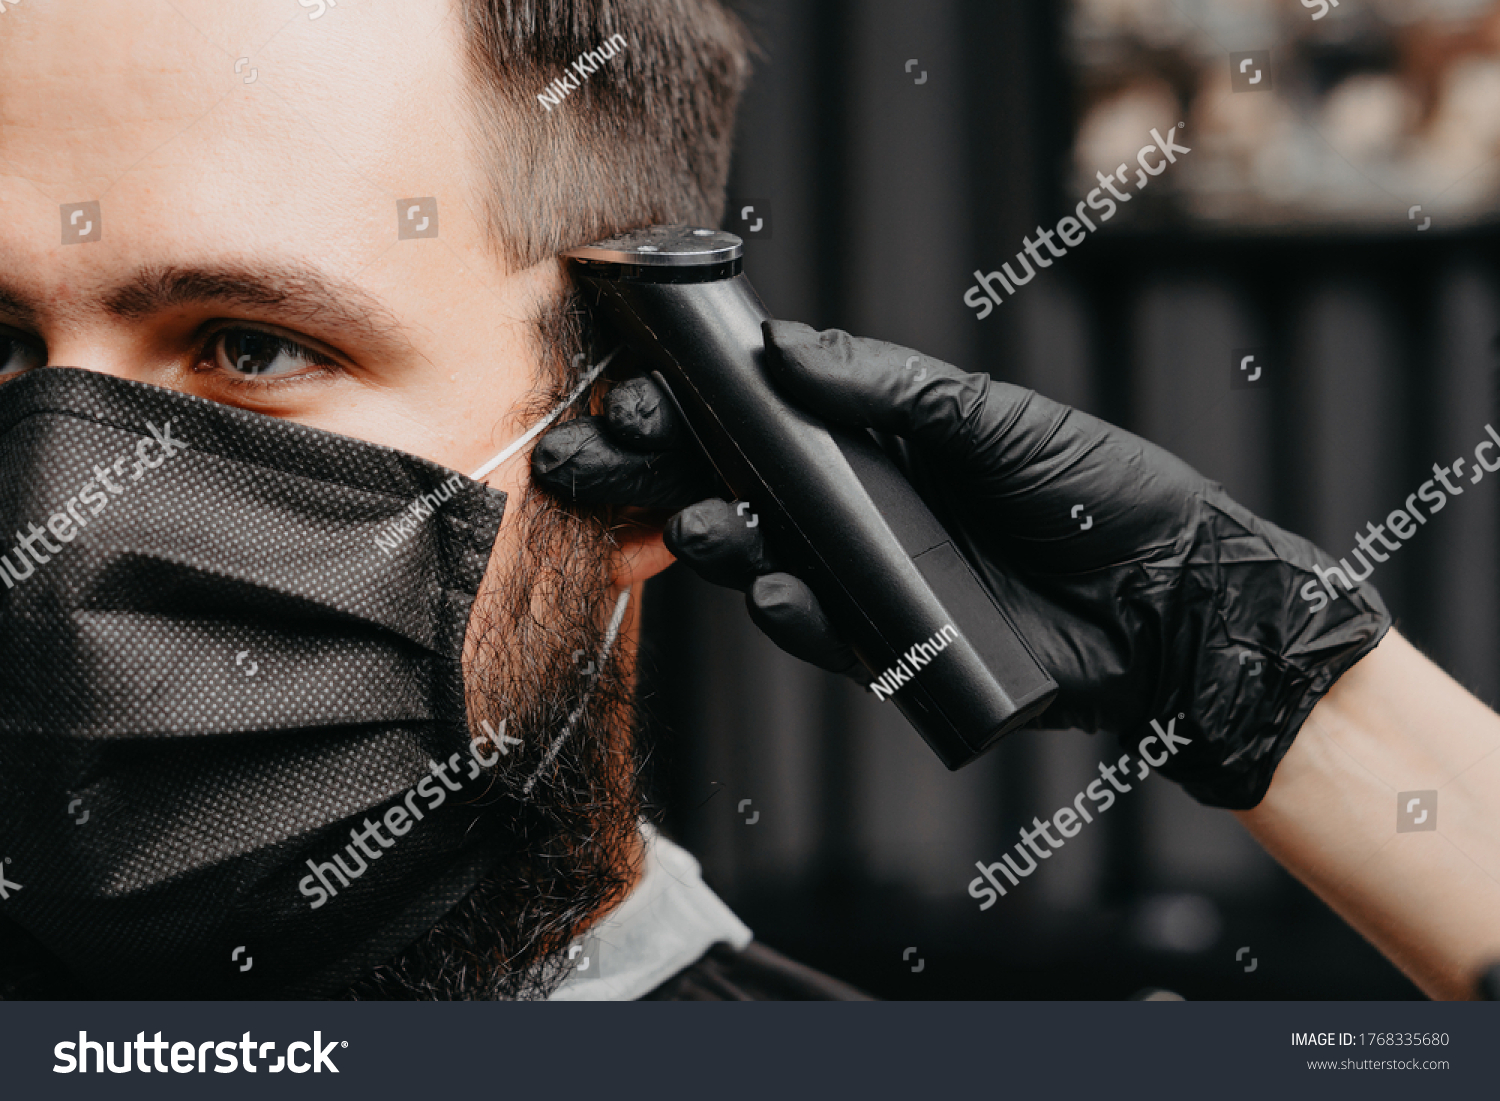 Woman barber cutting hair to a bearded man in face mask. Quarantine haircut concept. #1768335680